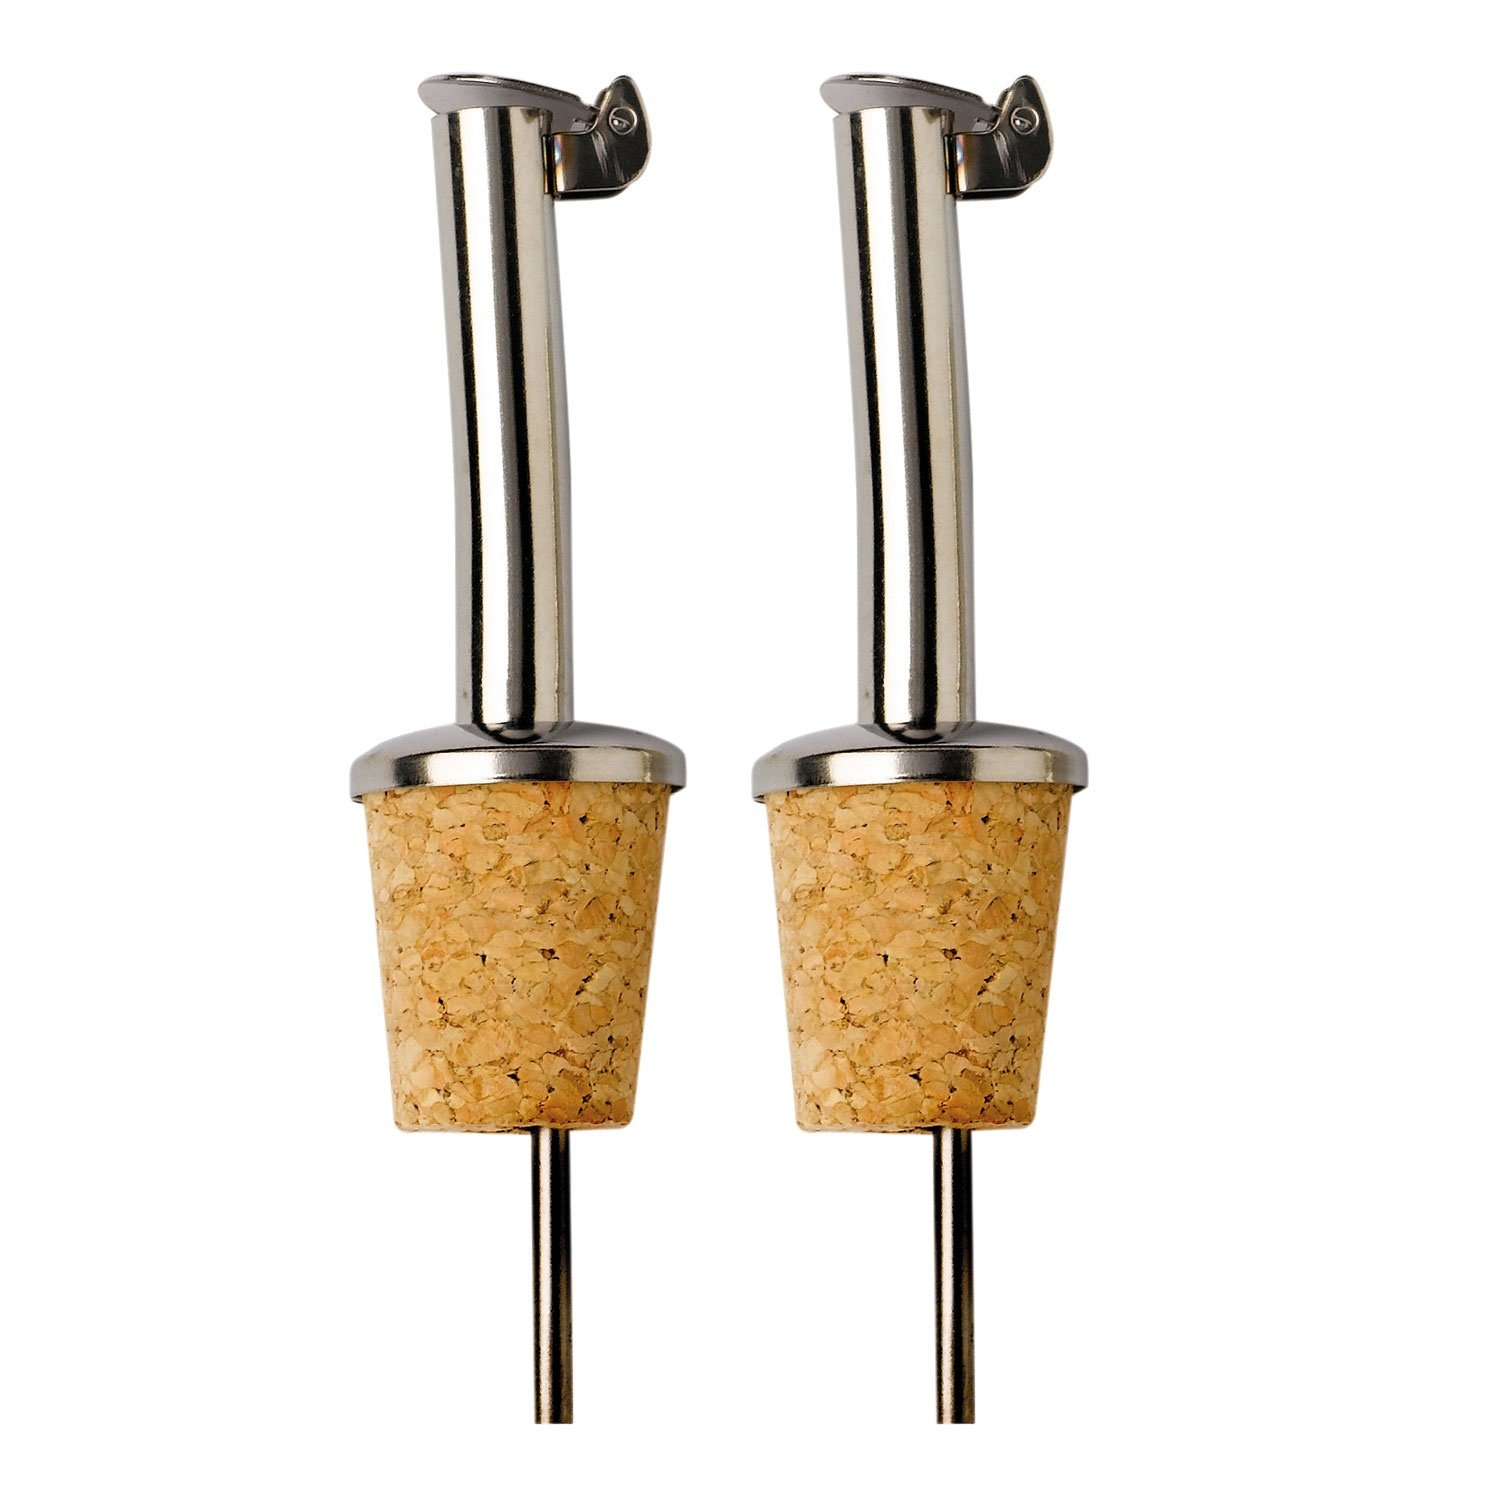 2 Pack : Oil Pourer : Stainless Steel Spout : Cork Stopper : for Oil, Vinegar etc : Flip Top Lid Kilo